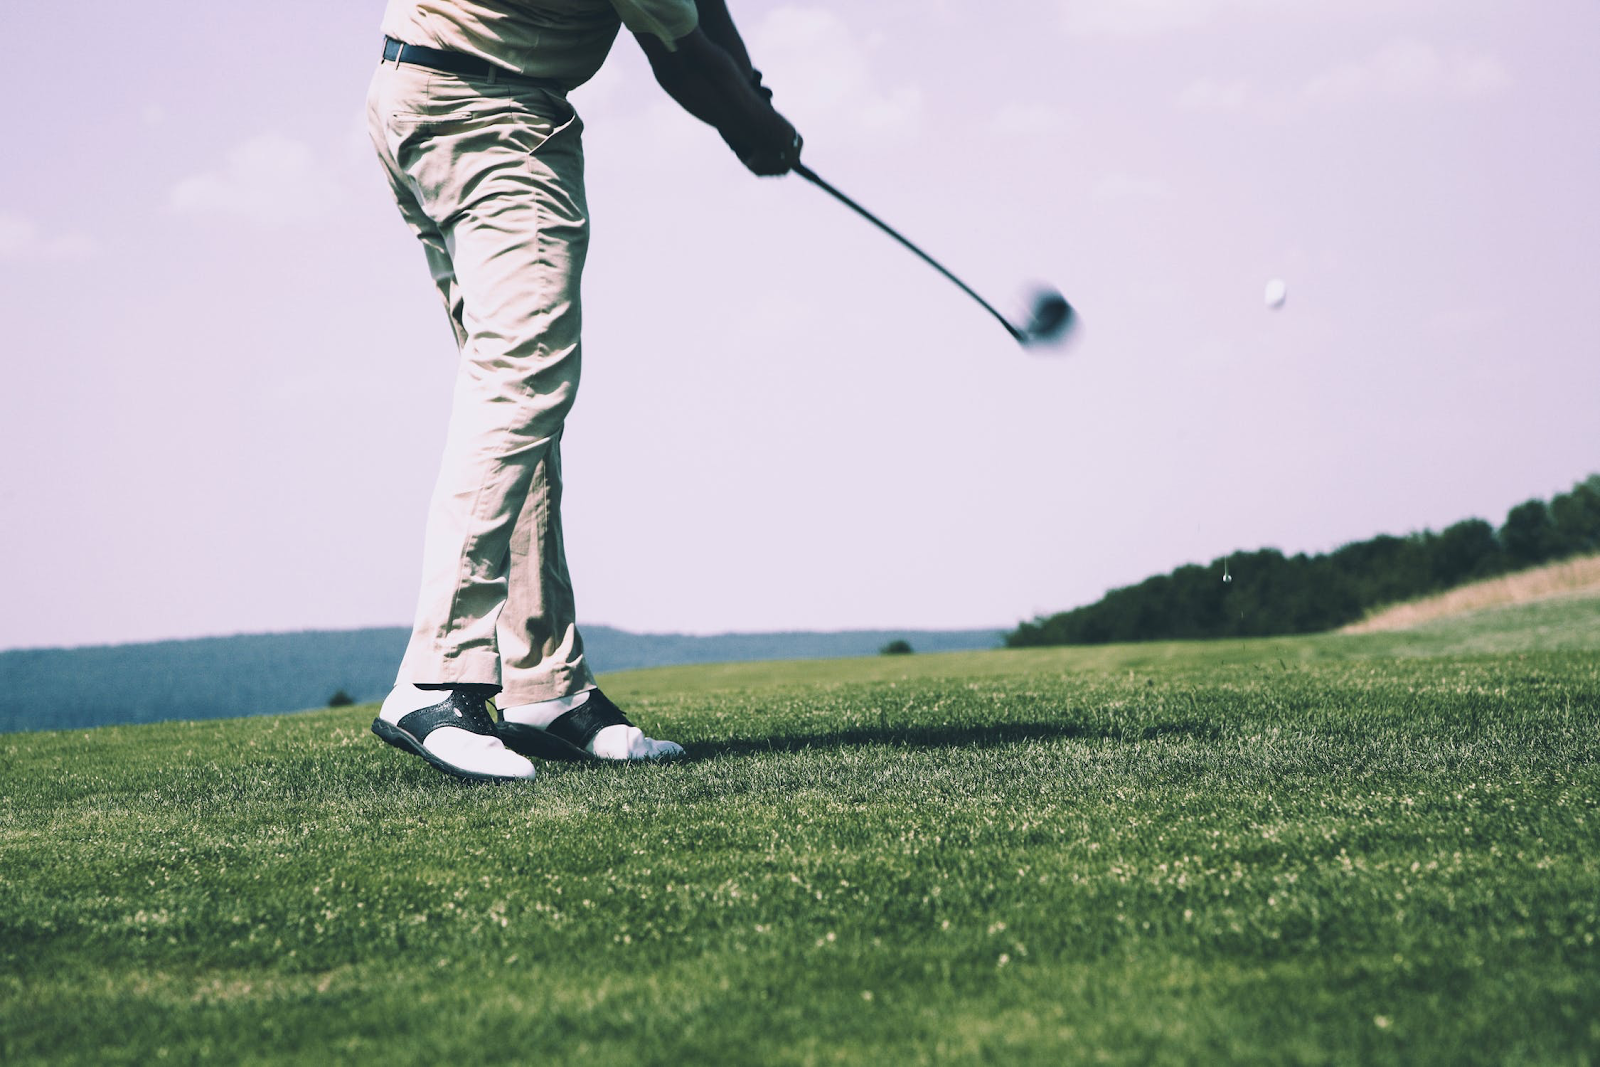 Spoiling a Nice Walk? How to Really Enjoy Golf